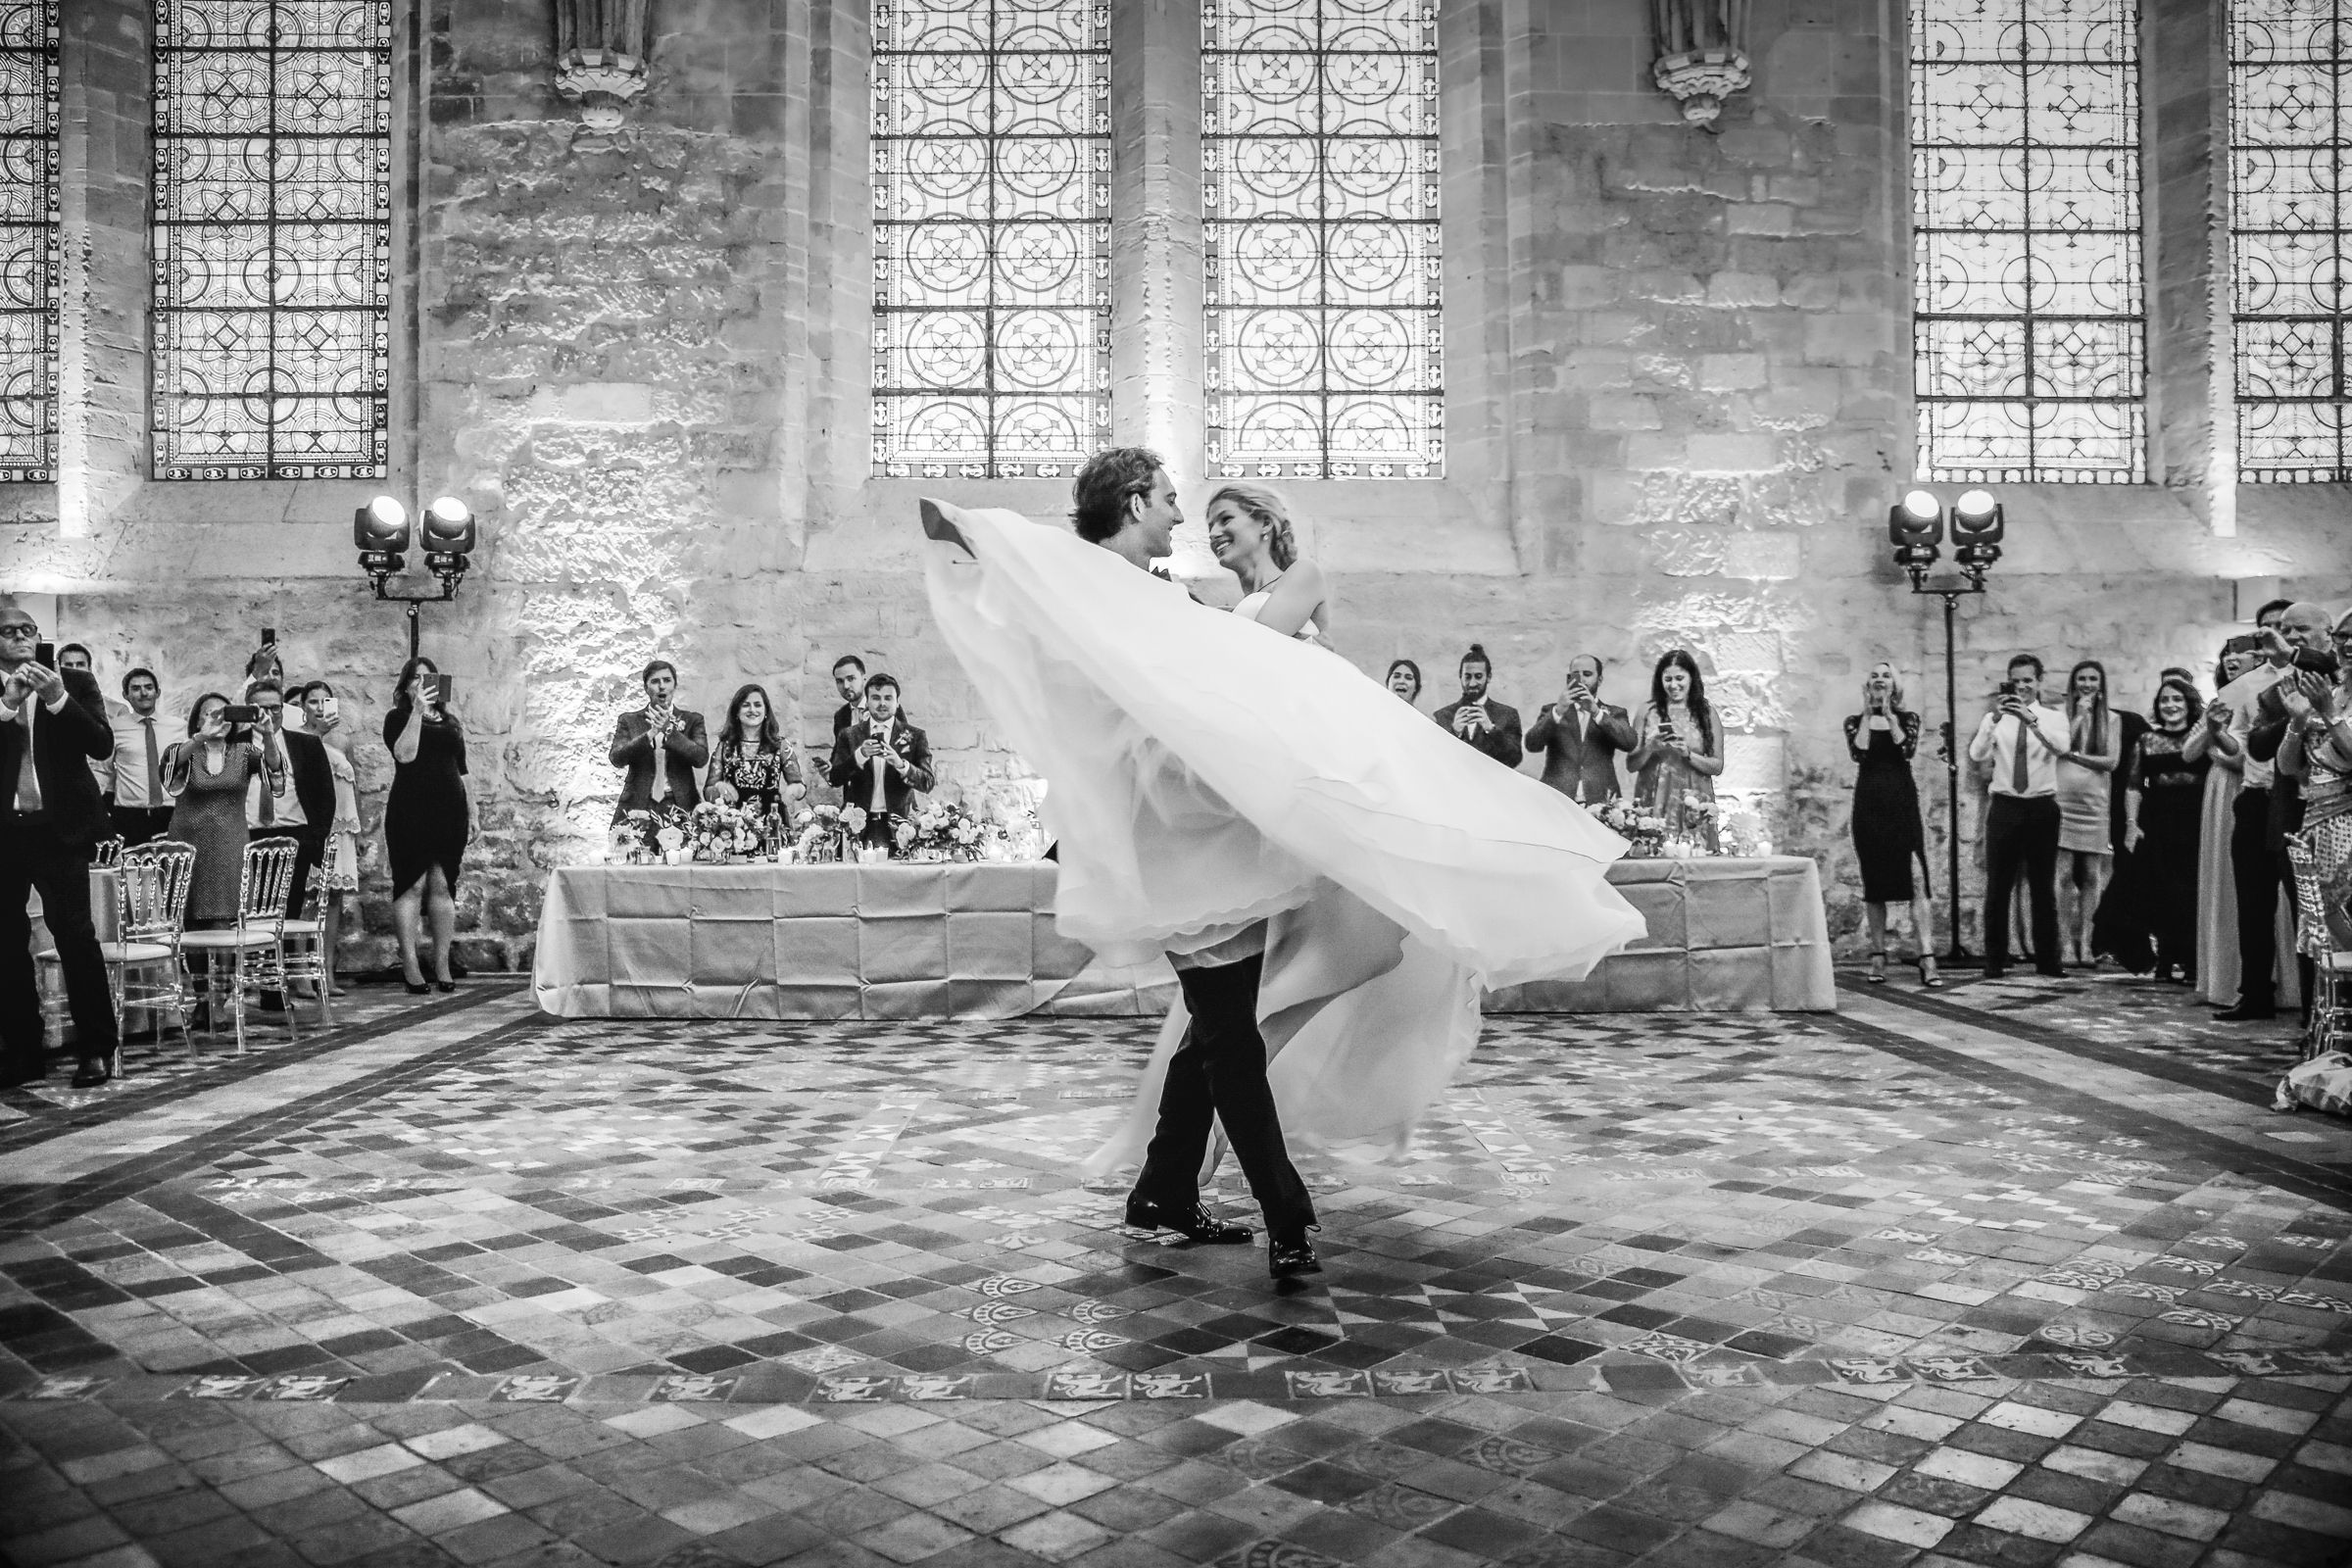 Bride twirled on tiled dance floor by groom - photo by Julien Laurent-Georges